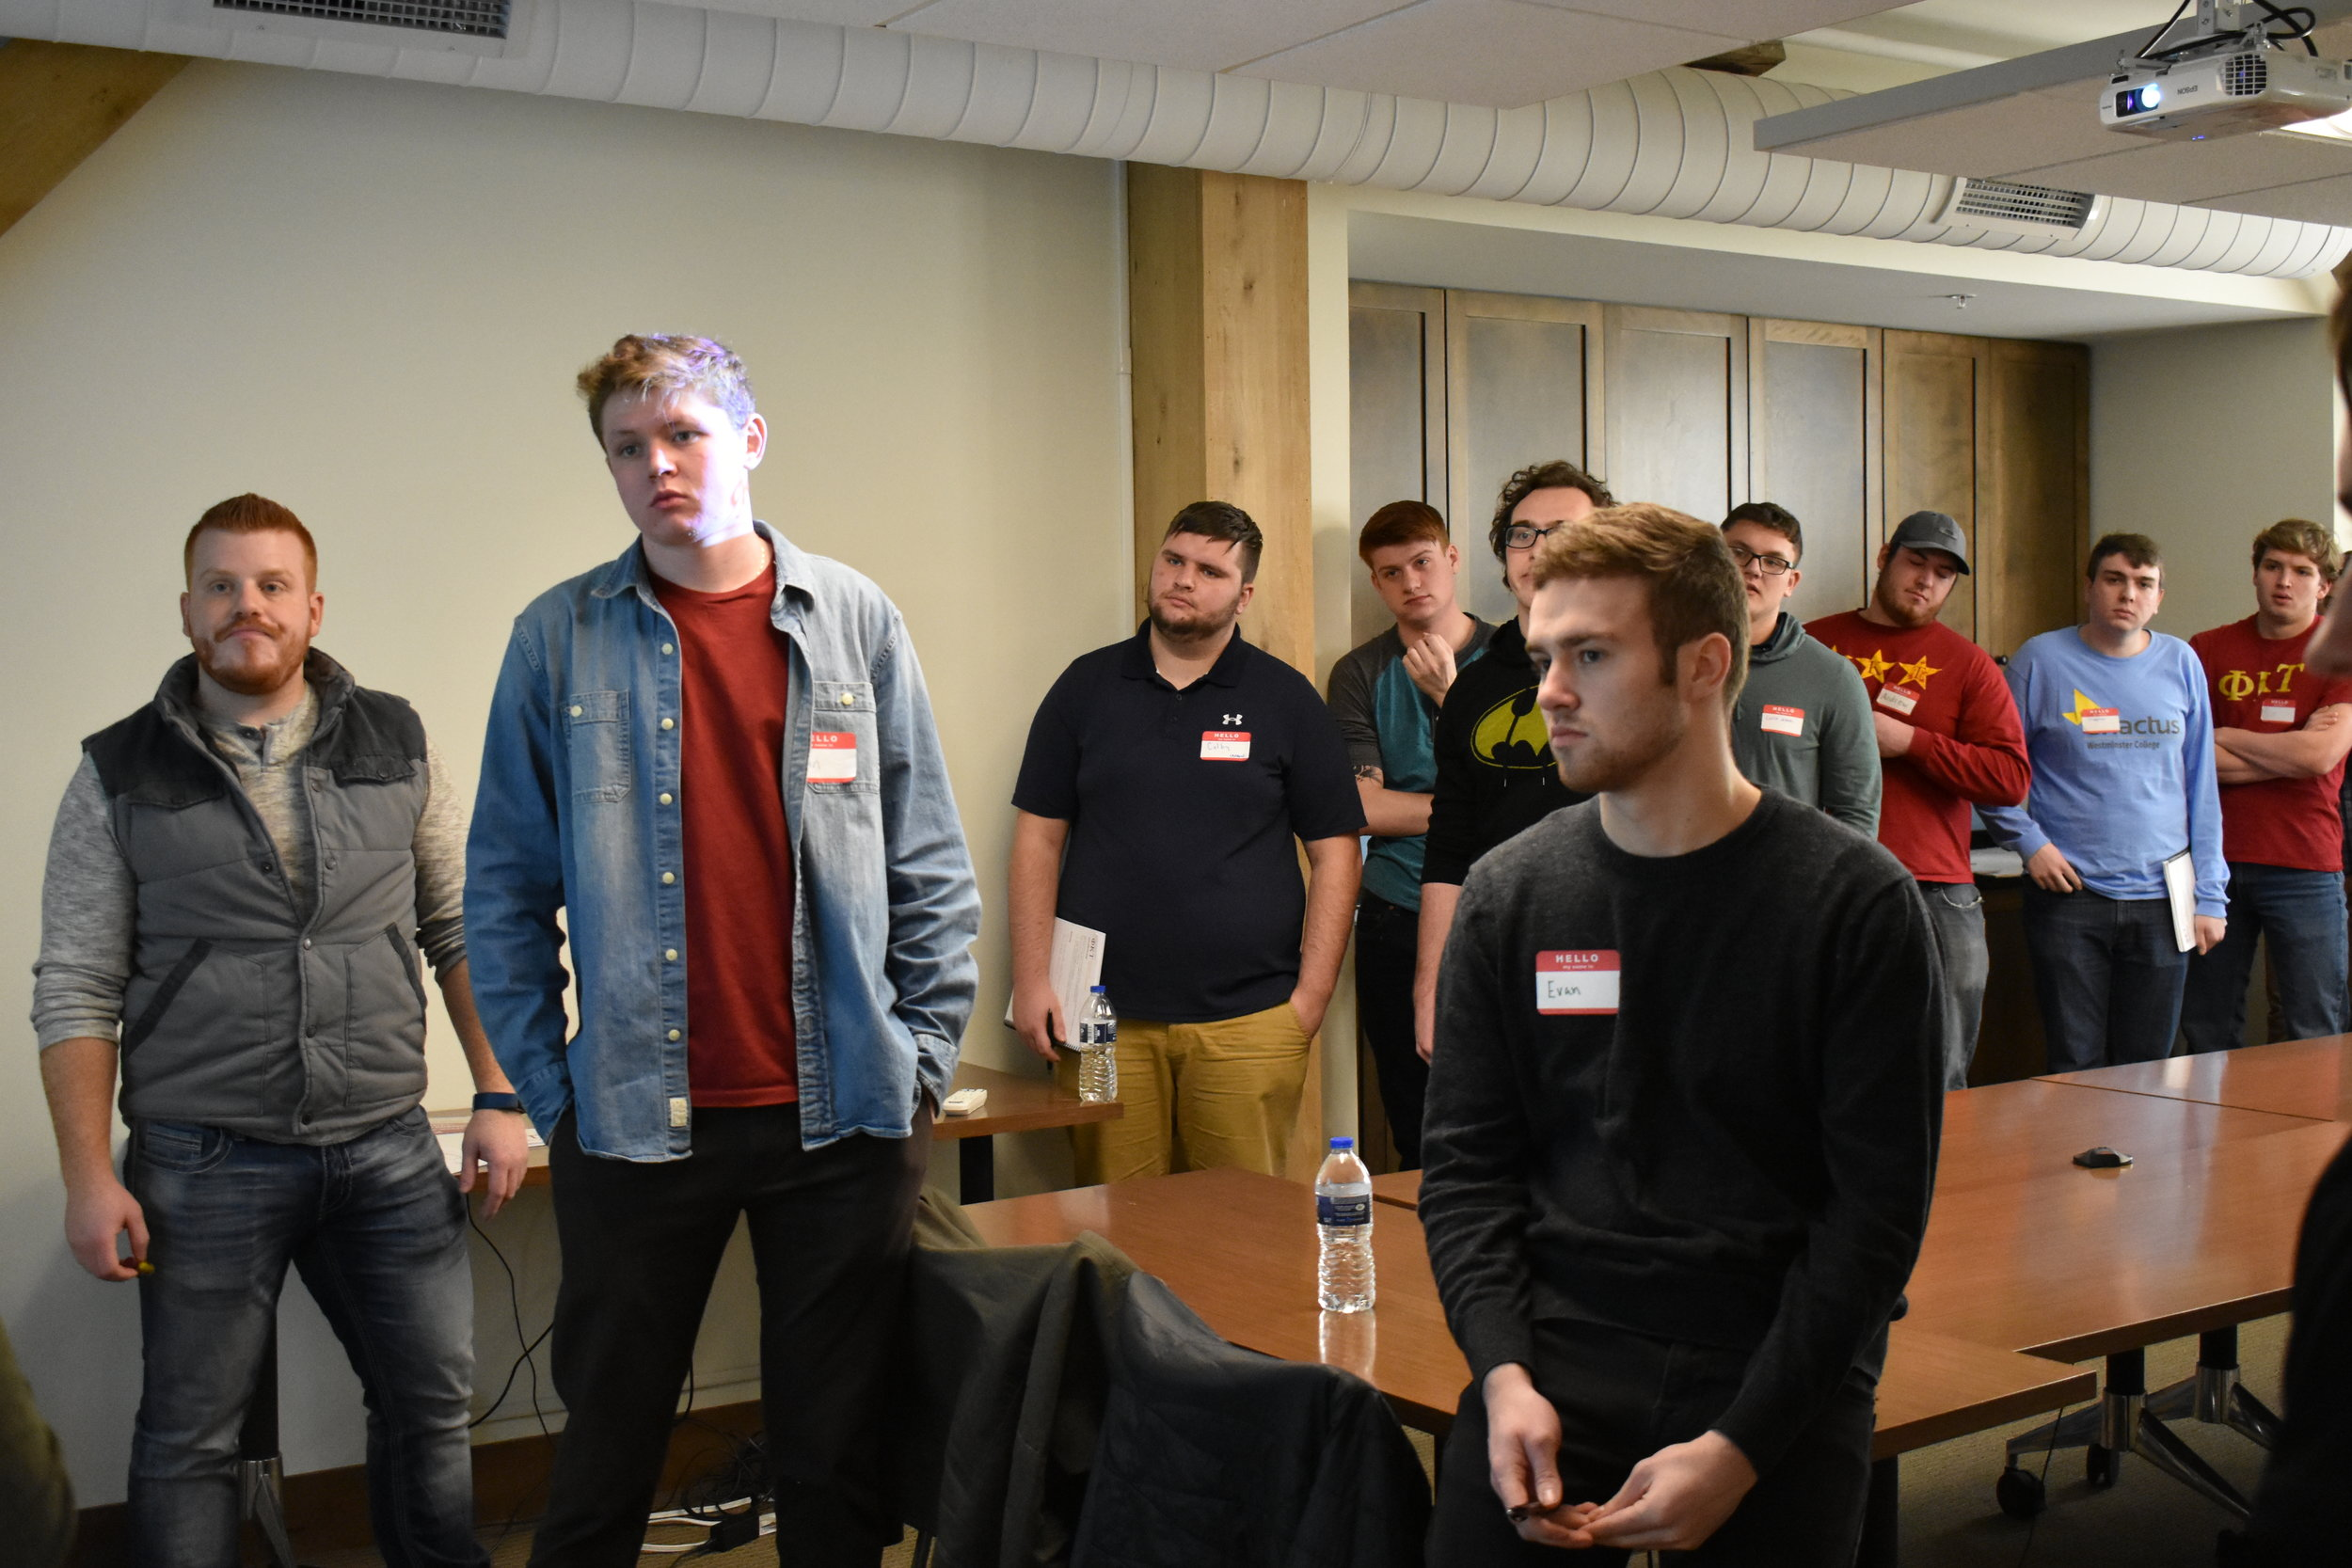 Participants had to react quickly to a situation and then provide an explanation for the decision they made